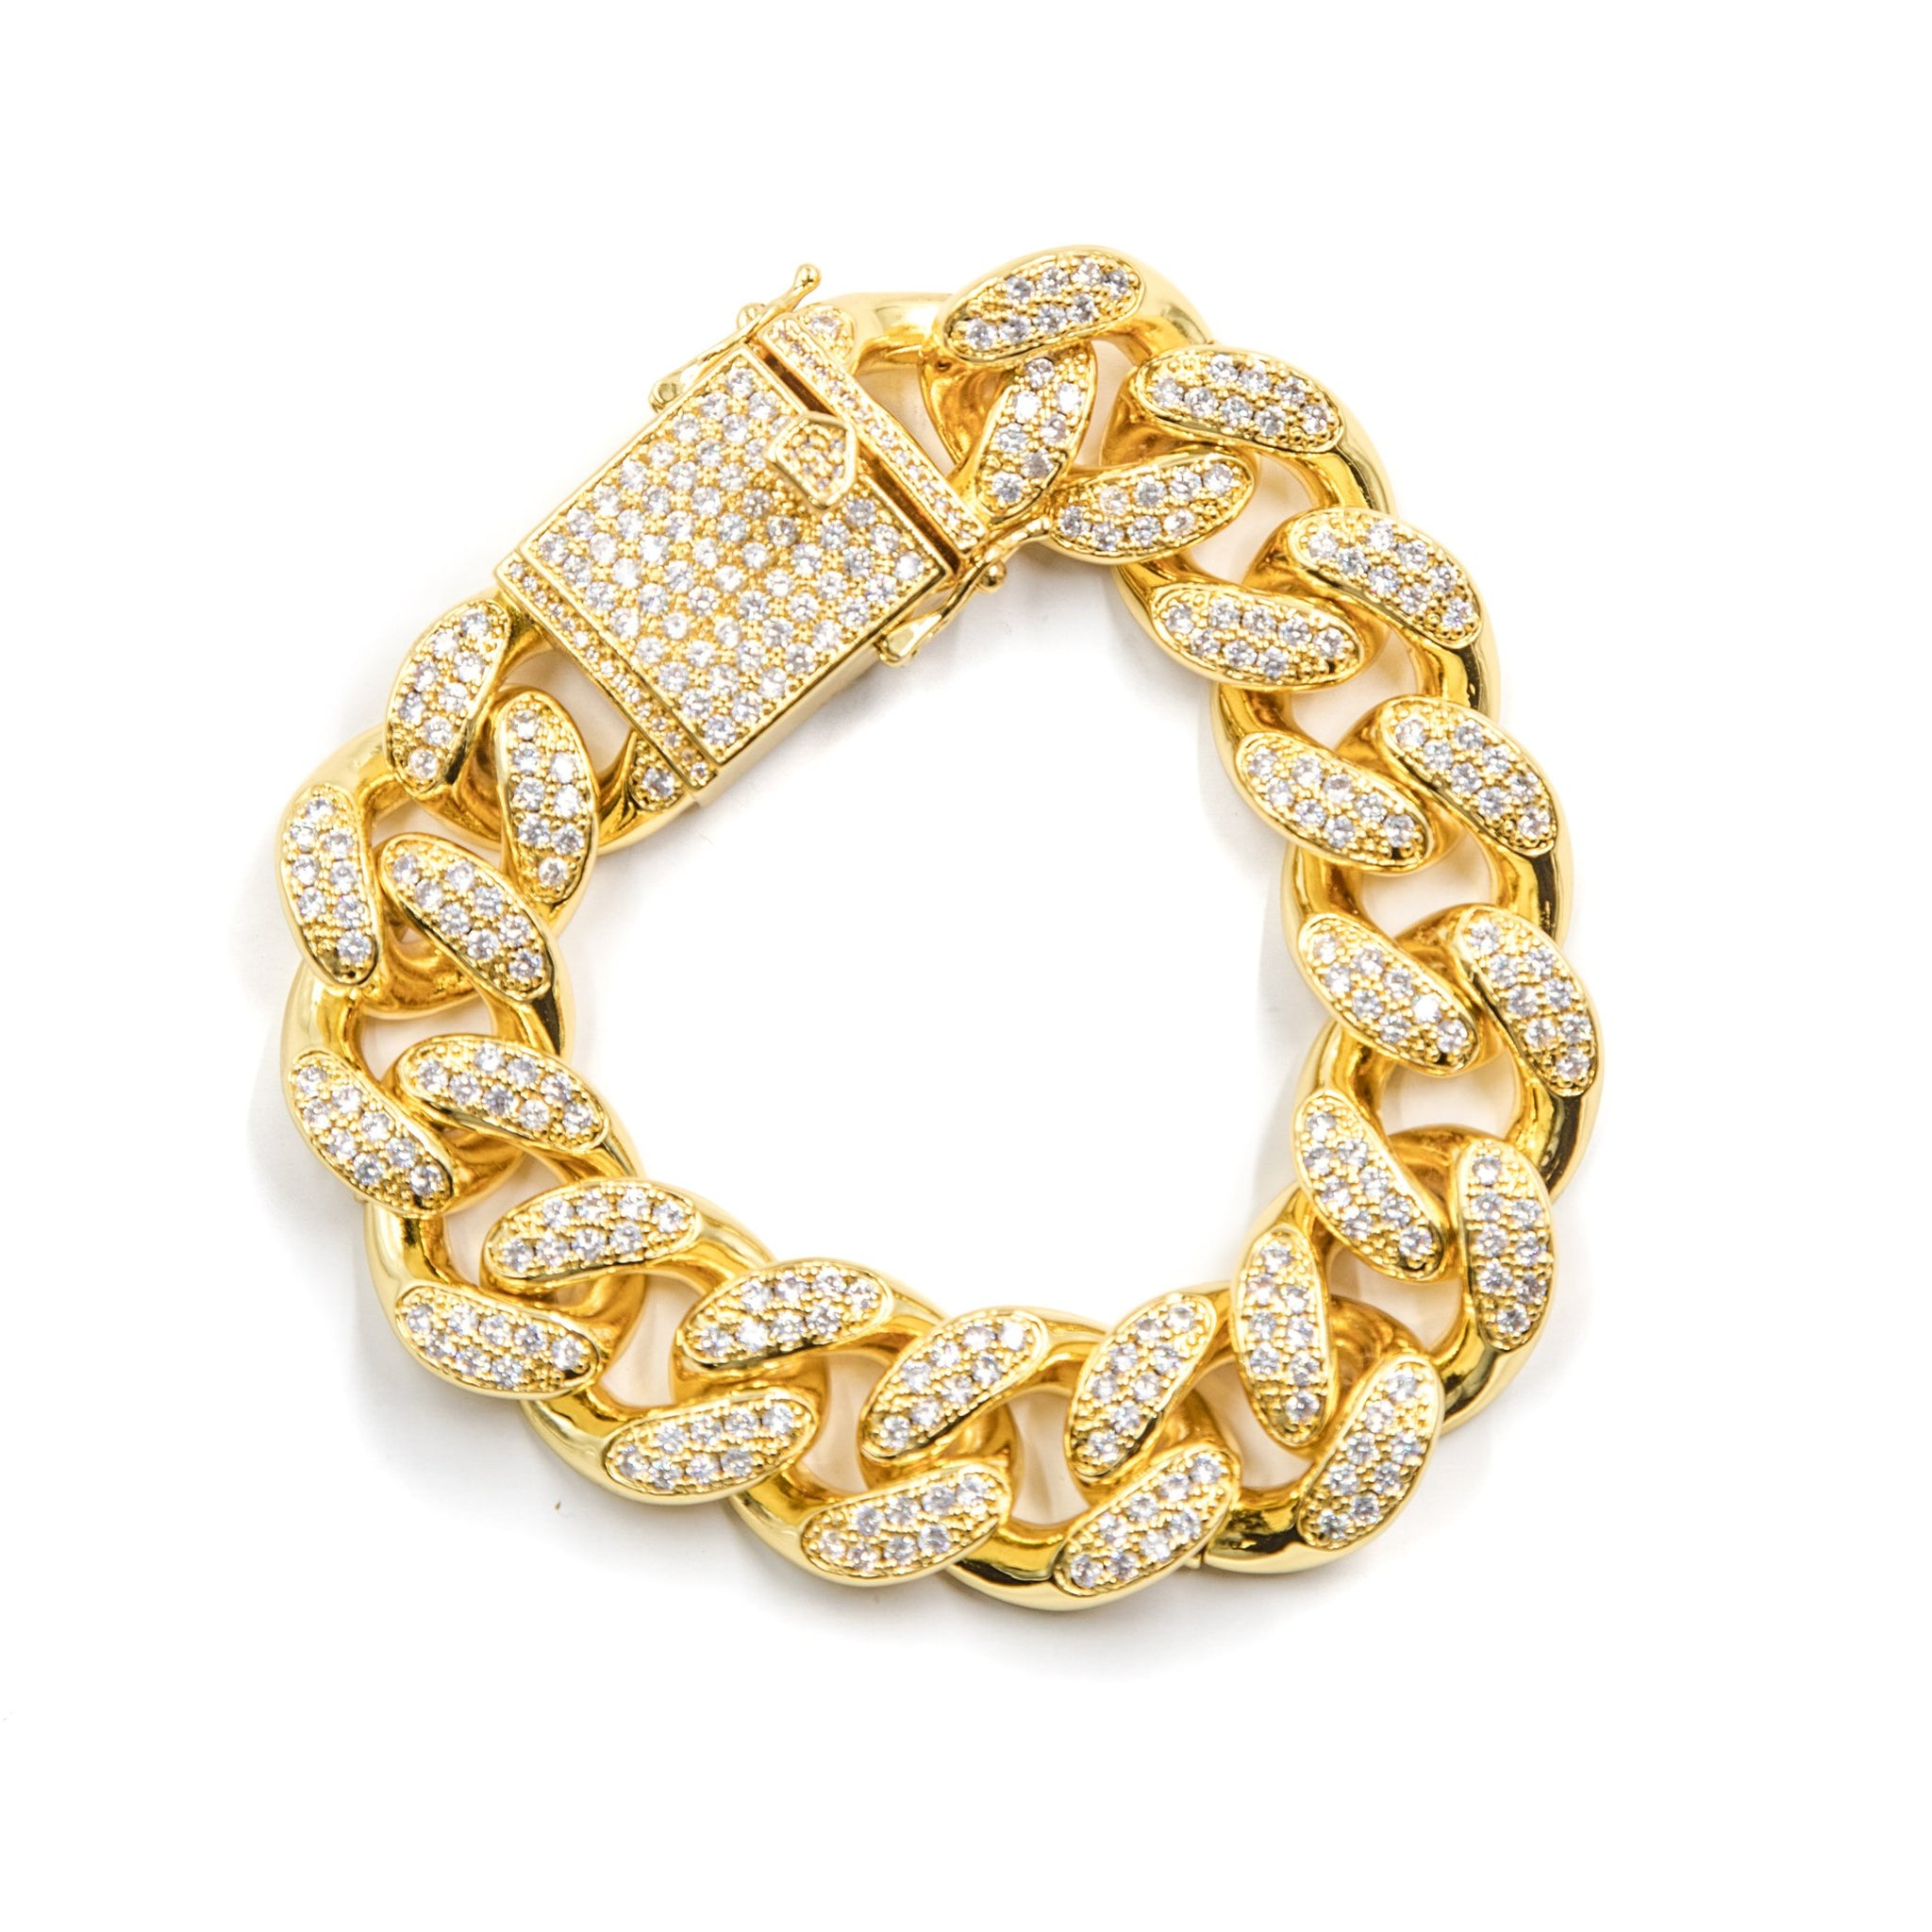 Studded Cuban Link Bracelet - 18K Gold Plated - GOLDENGILT